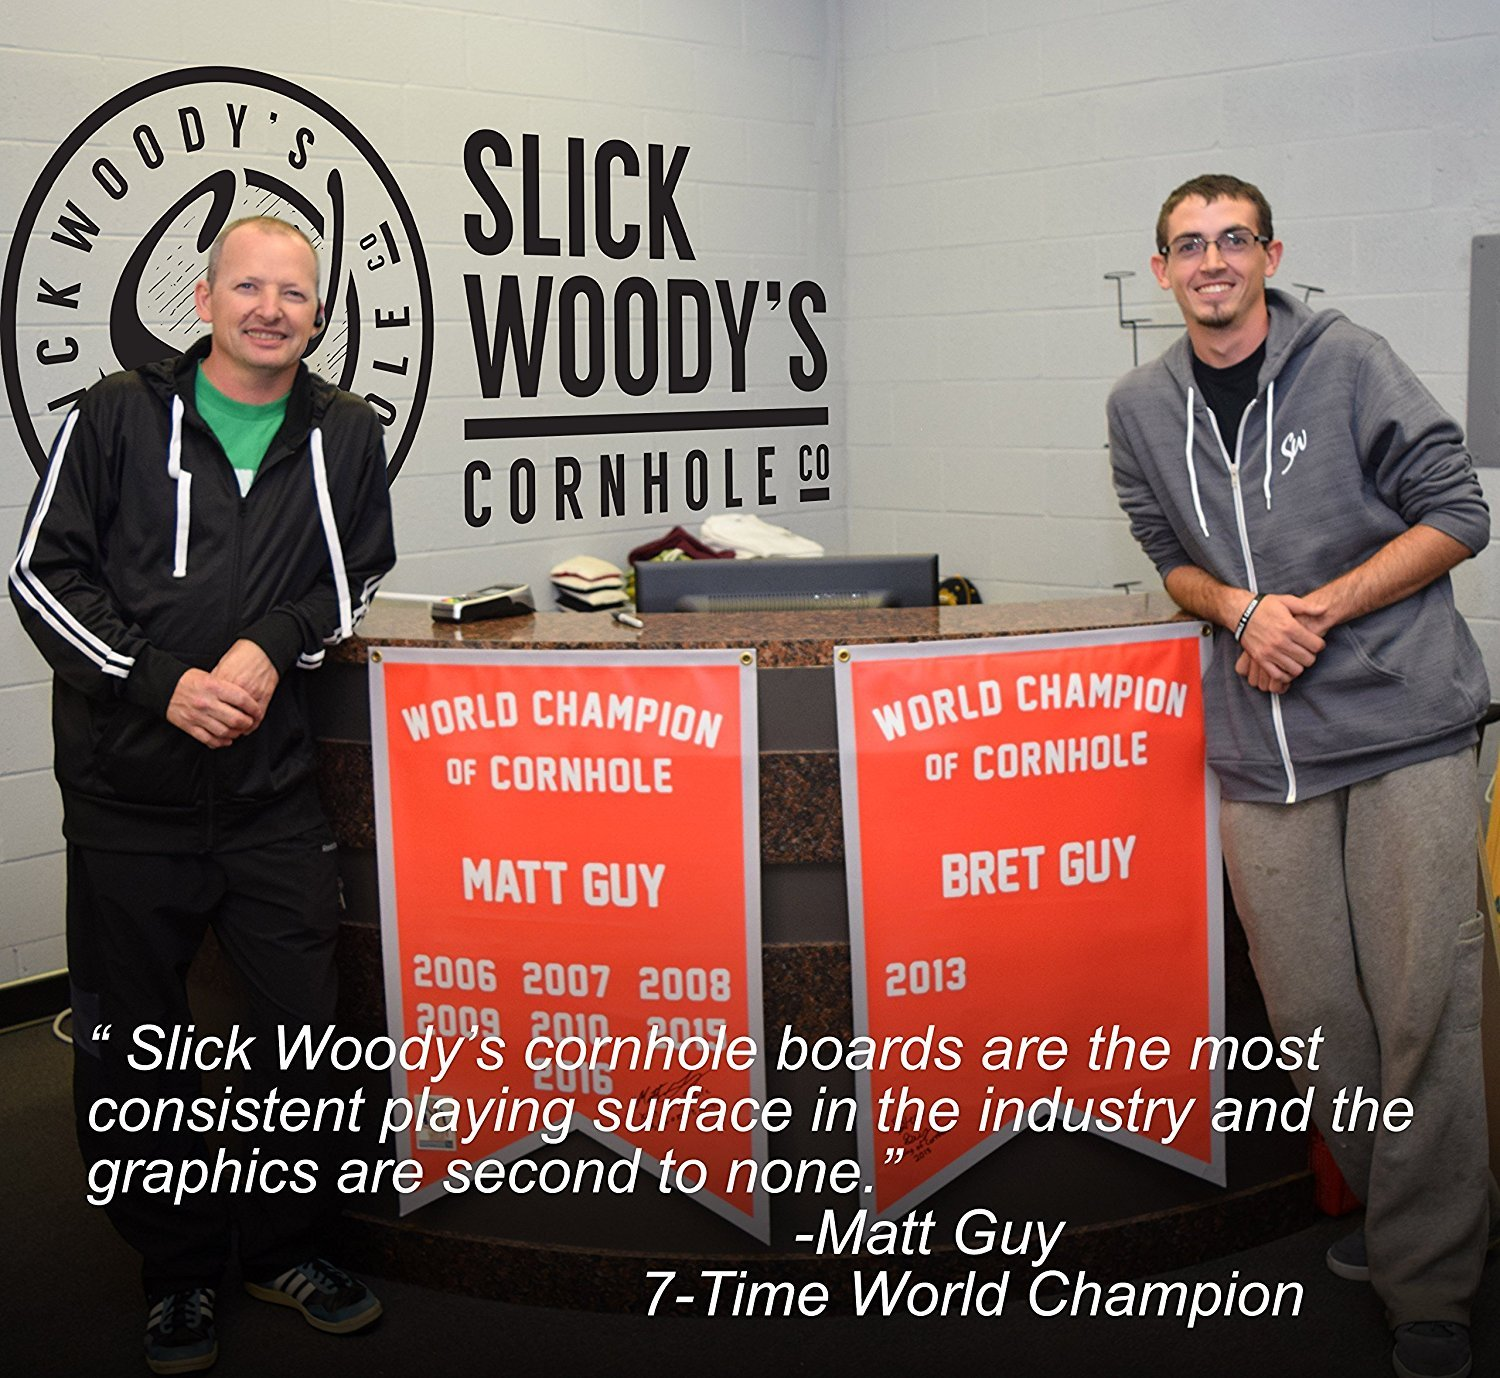 Slick Woody's 4'x2' Regulation Size American Big Buck Cornhole Boards Set by Slick Woody's Cornhole Co.